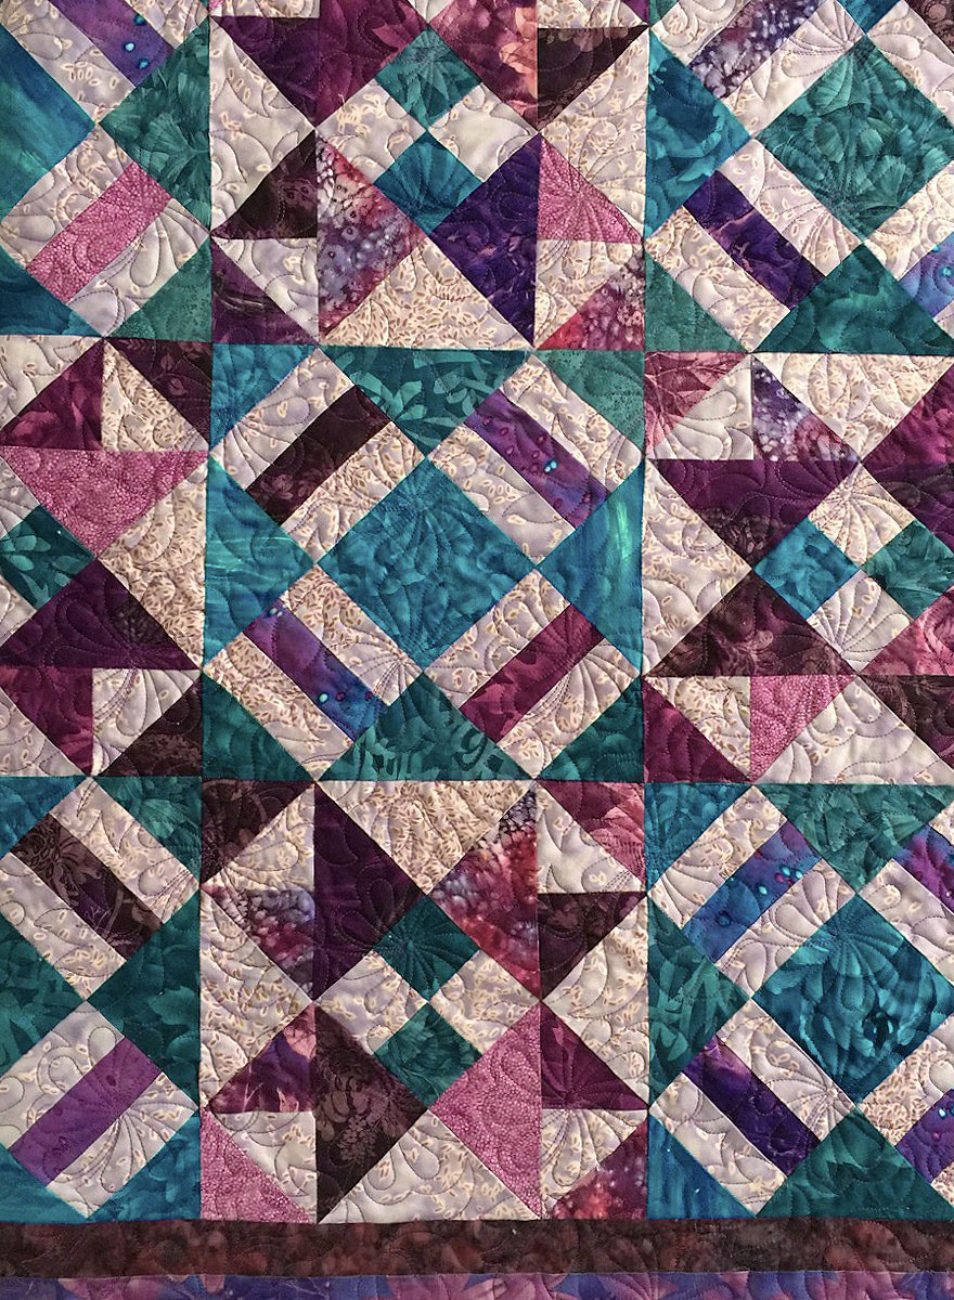 Purple Batik Quilt-Flower with Leaves Pattern